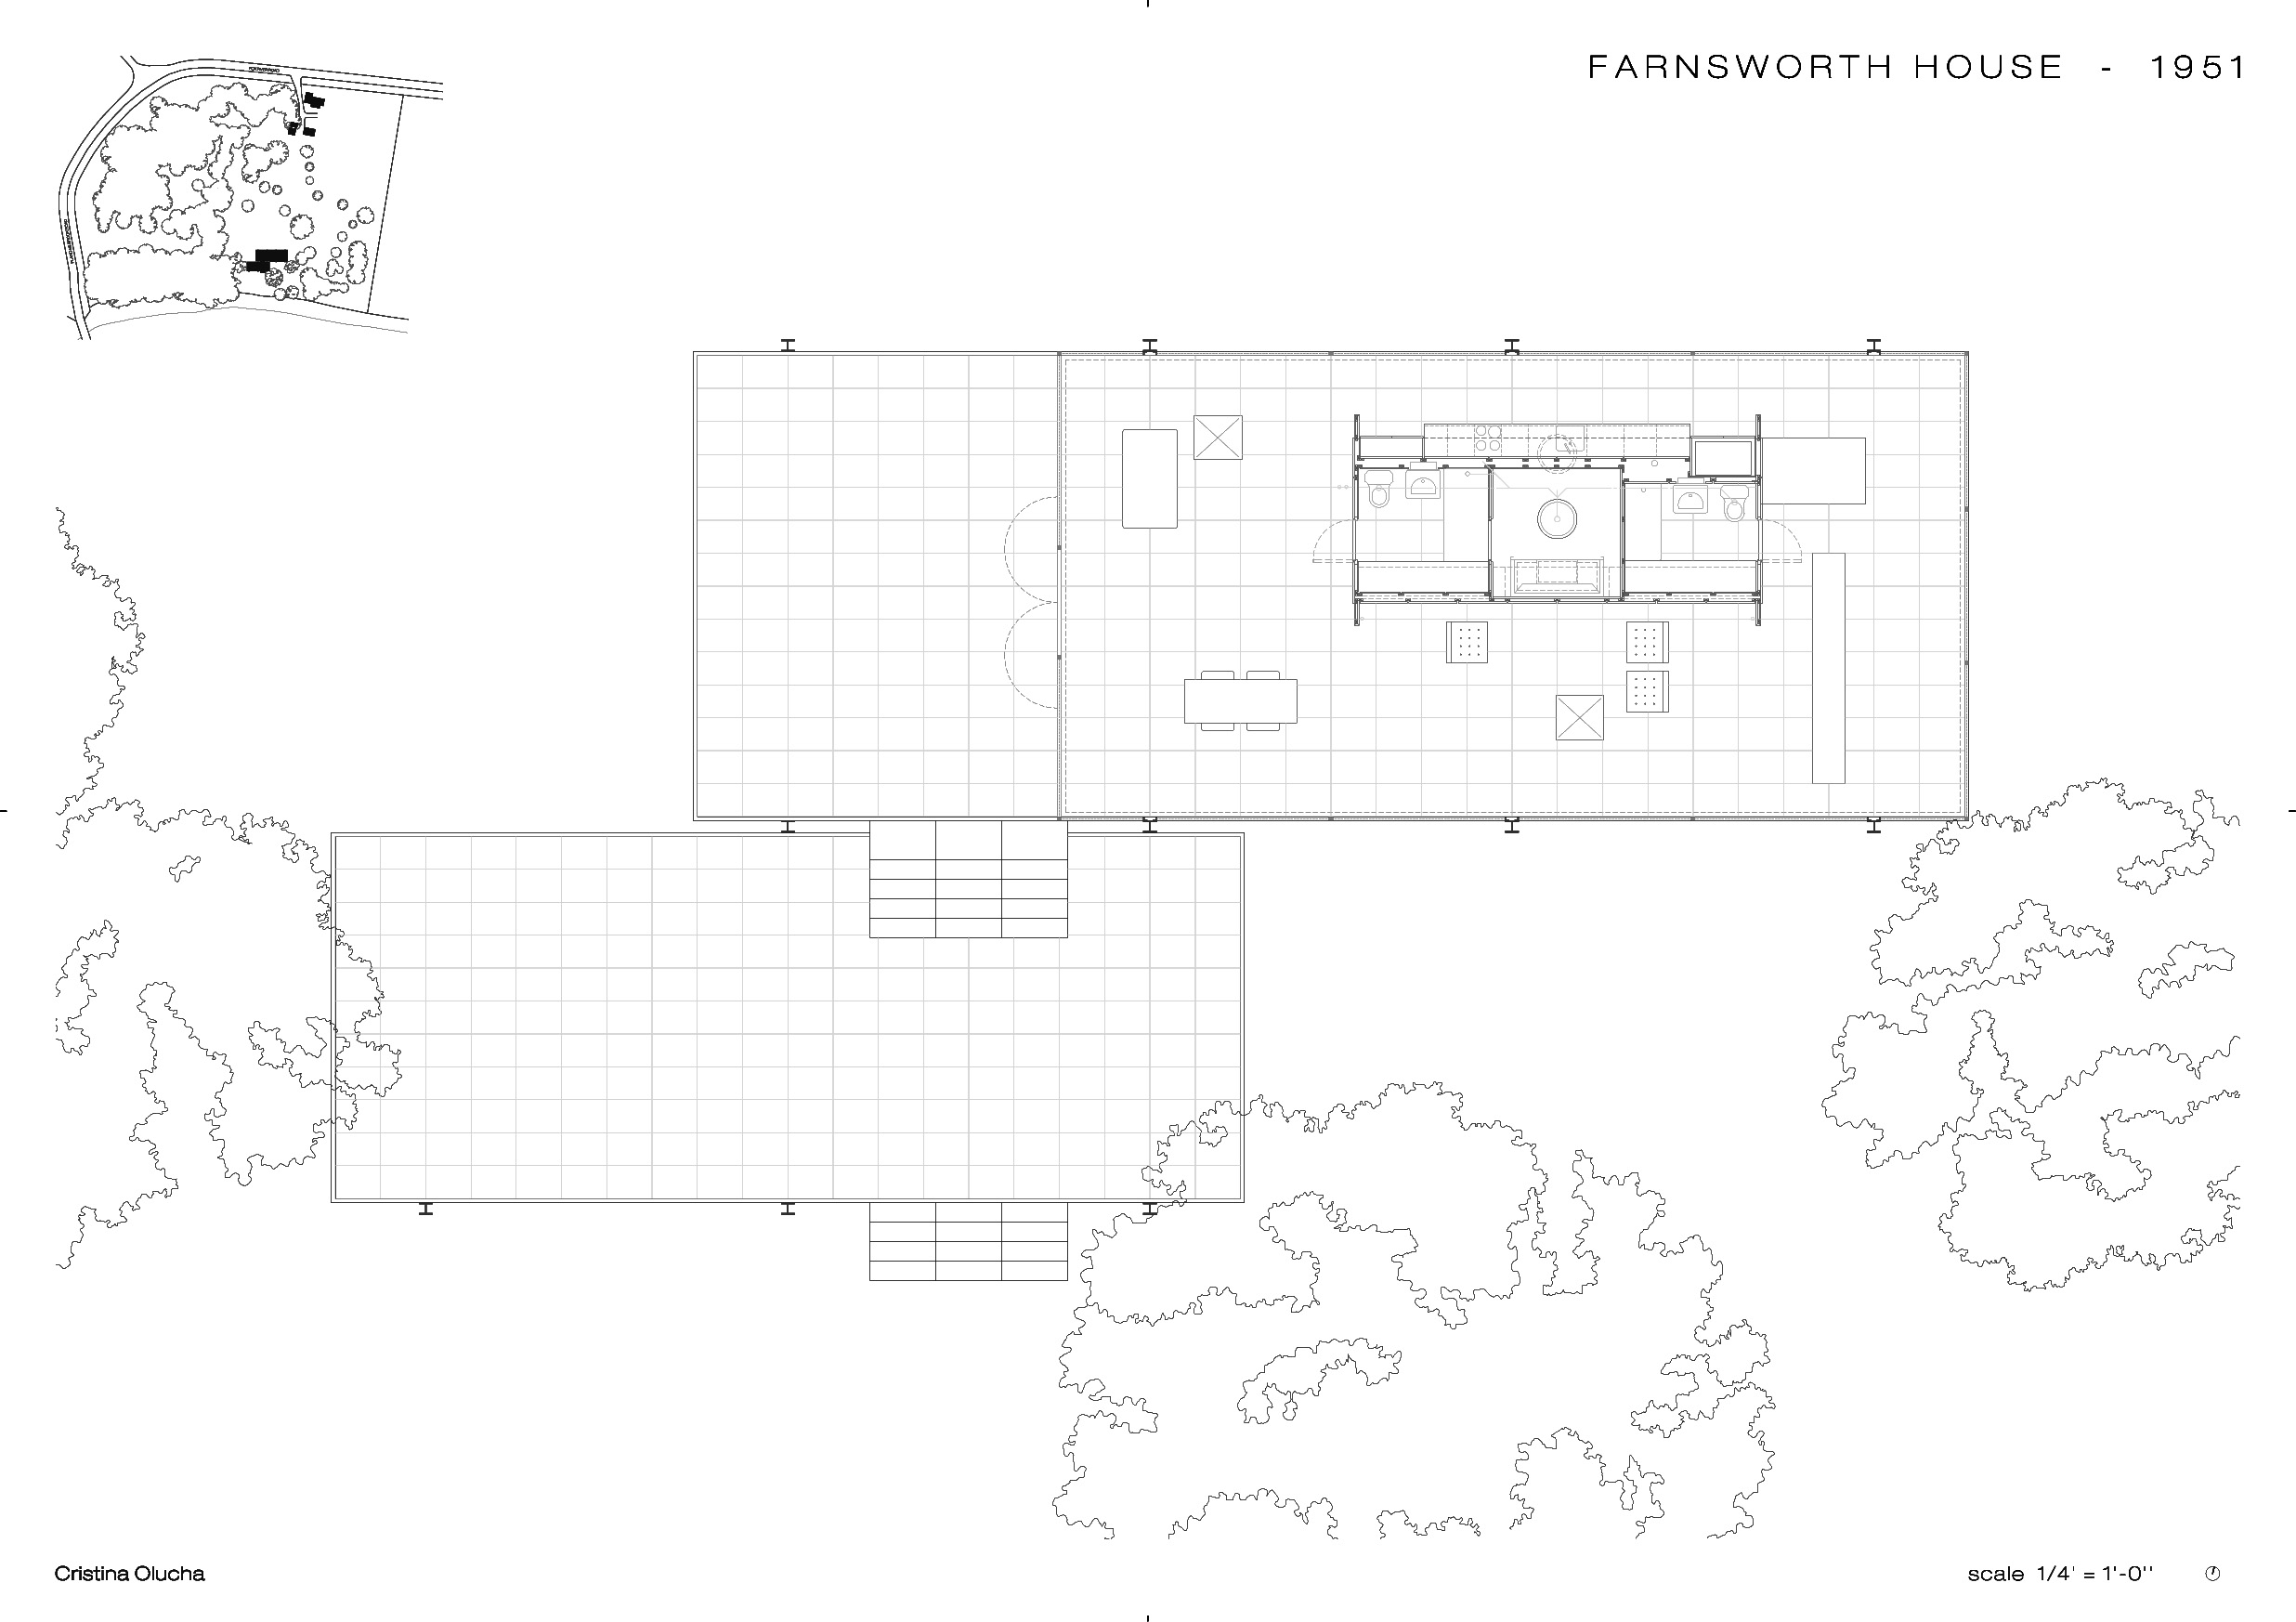 Farnsworth house by mies van der rohe cristina olucha for Farnsworth house floor plan